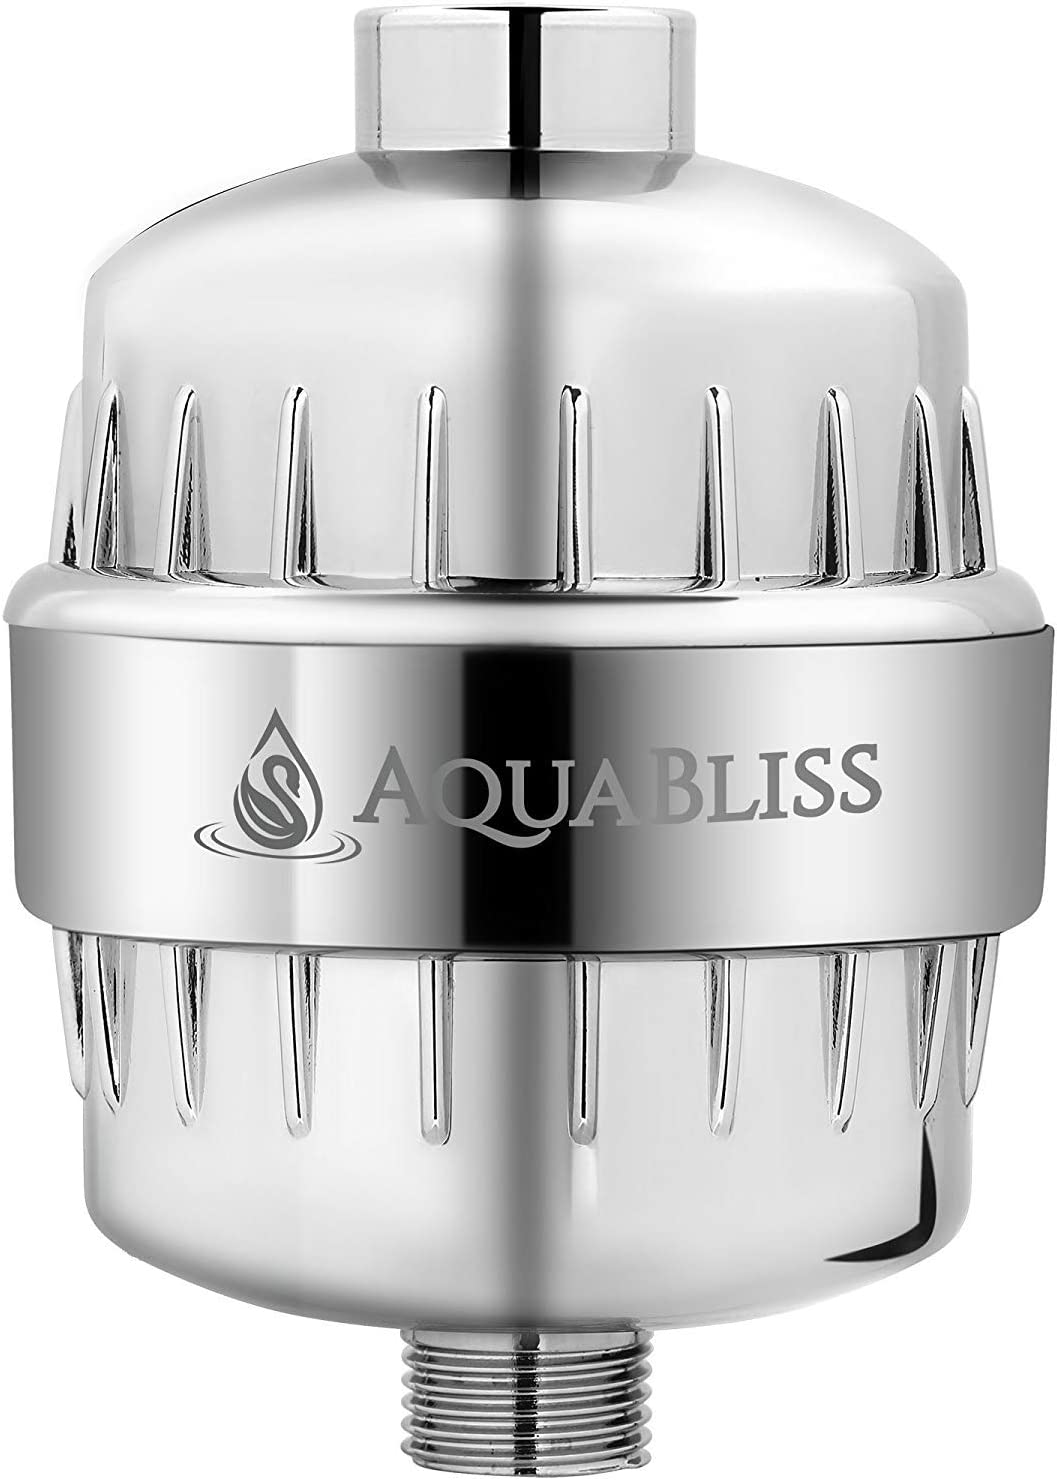 AquaBliss SF220 High Output Universal Shower Filter